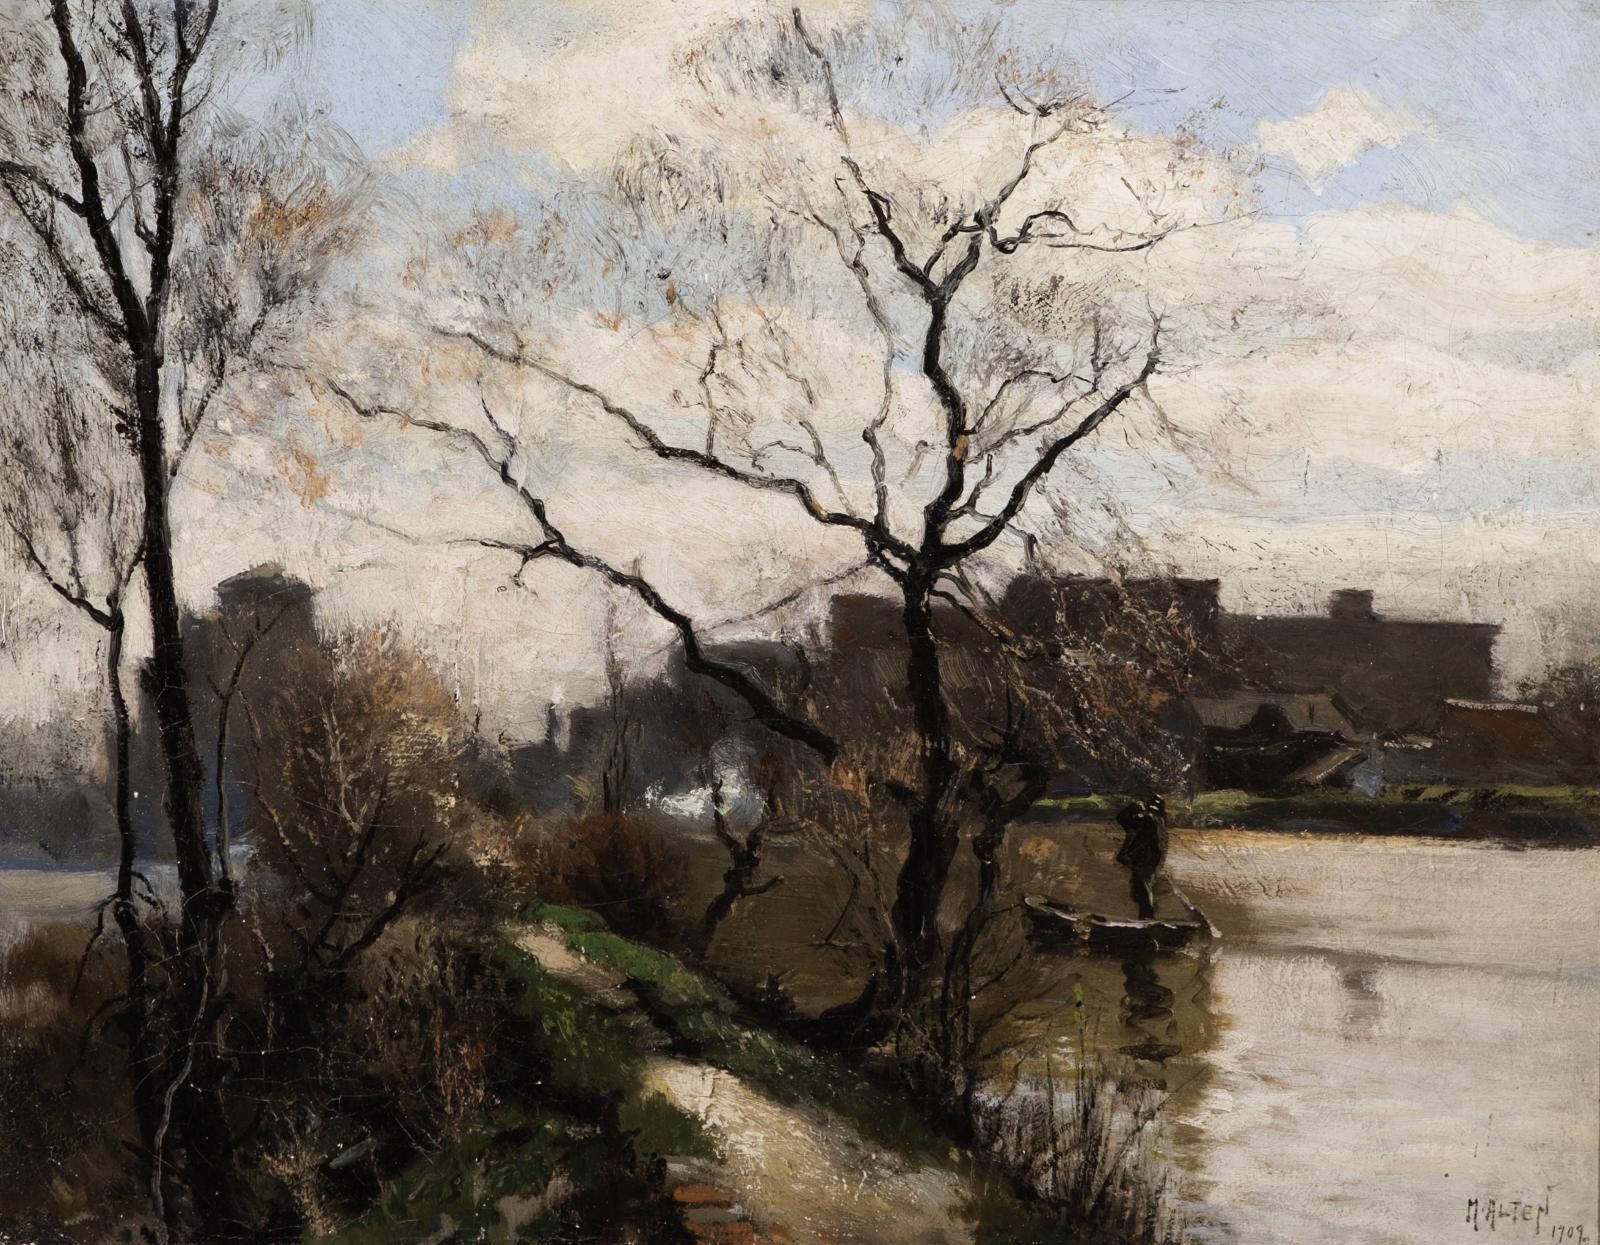 Leafless trees on a small hill near a river with buildings in the background.